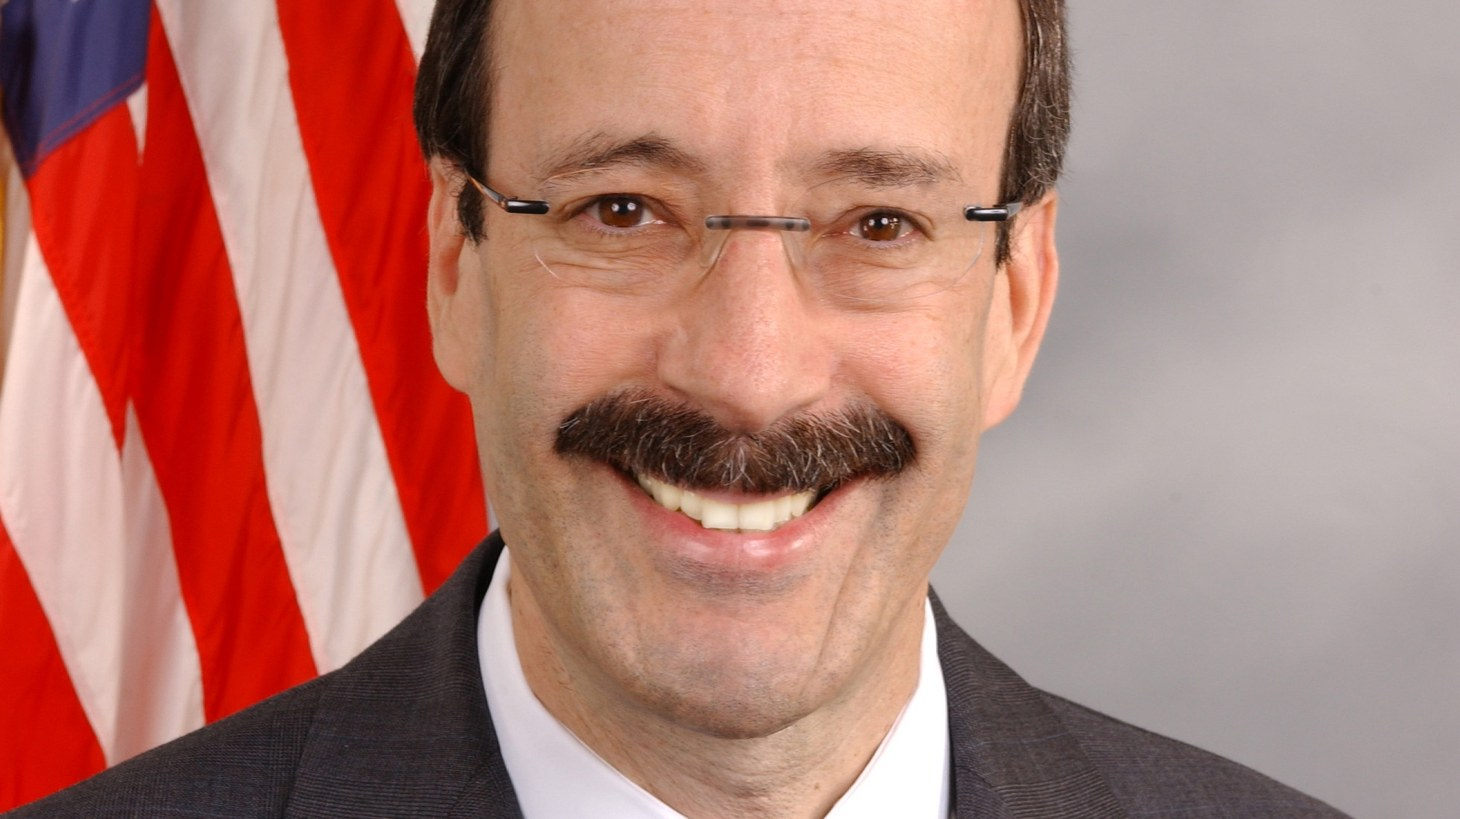 Eliot Engel has spent 31 years in Congress. Now he's being challenged by Jamaal Bowman, a teacher and principal in the Bronx.